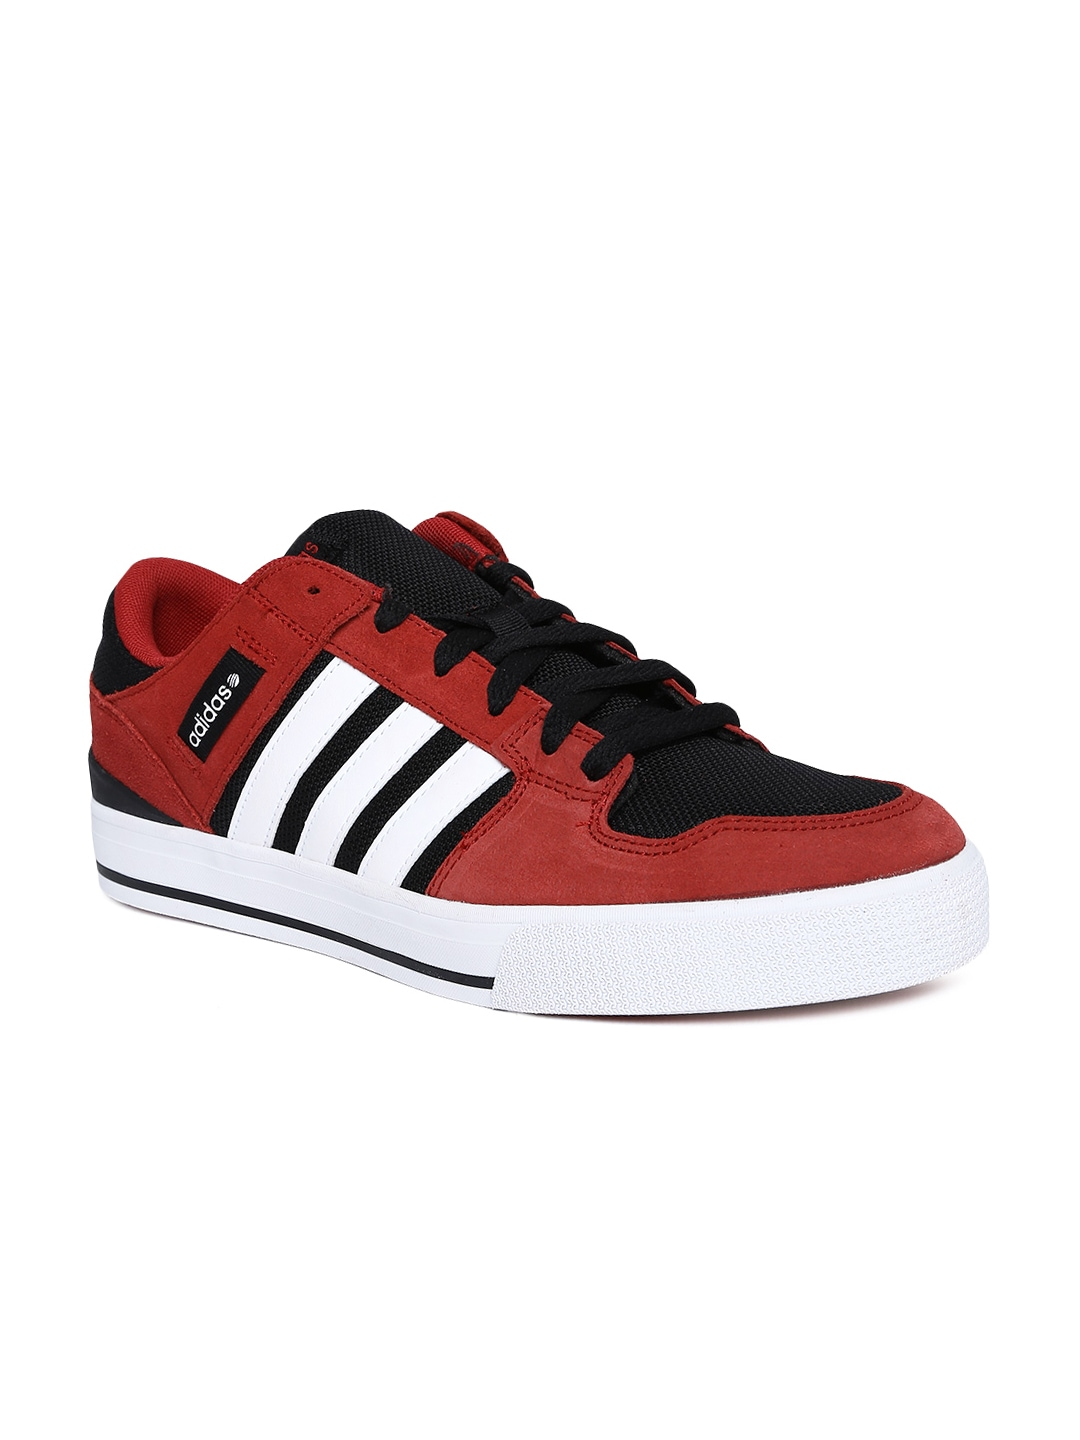 Adidas Neo Sneakers Red